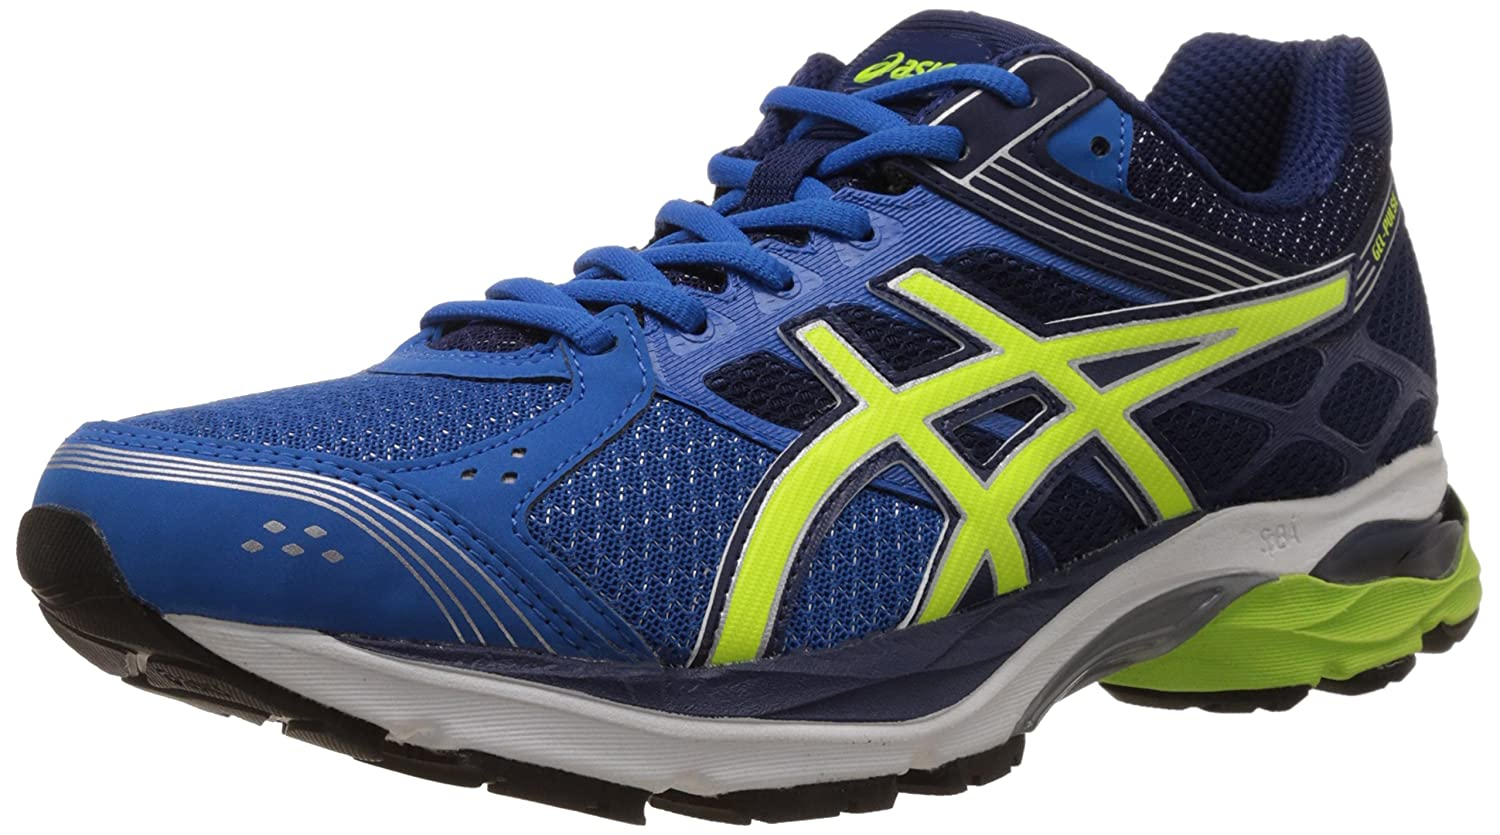 ASICS Men's Gel Pulse 7 Electric Blue, Flash Yellow and